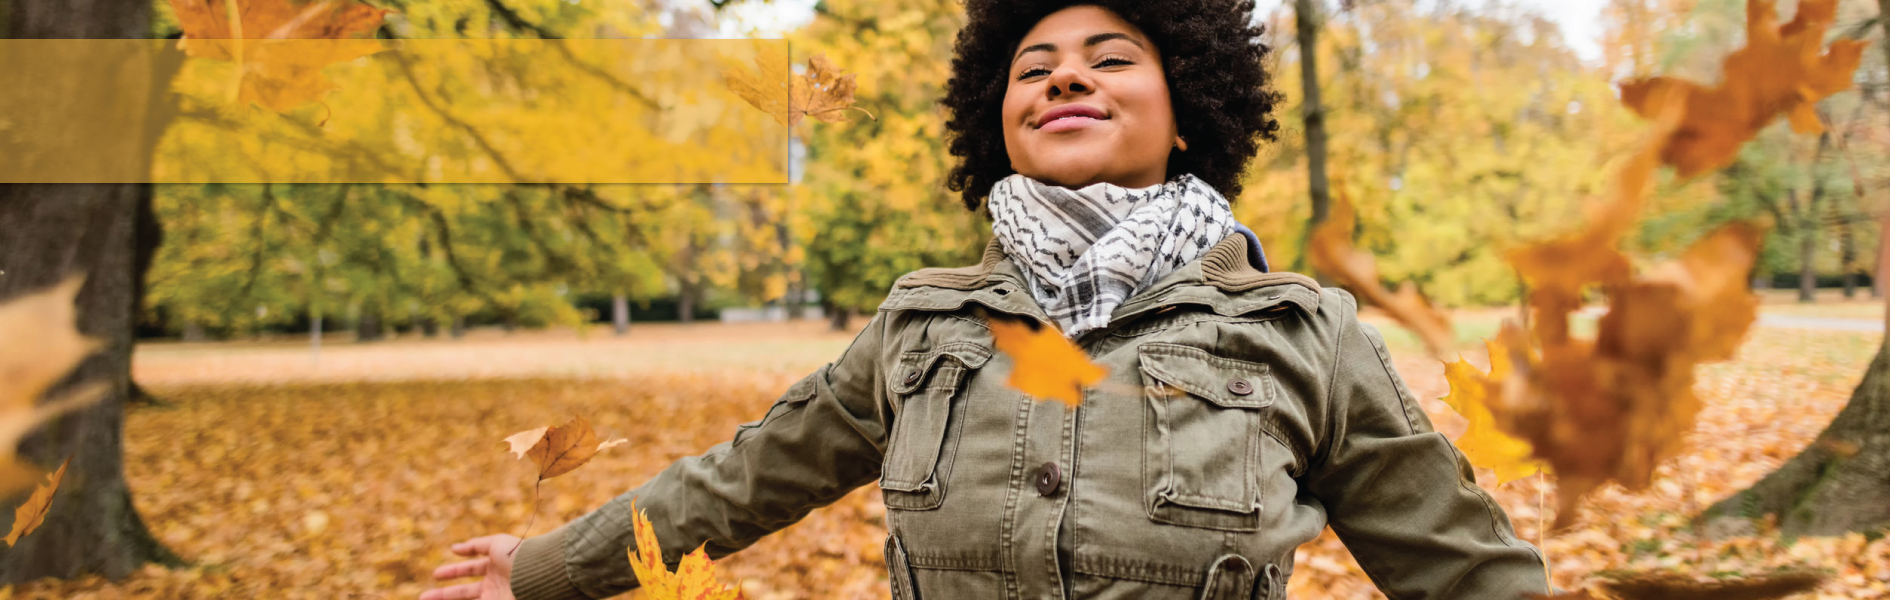 Fall-into-Savings_Web-Banner_1890x600_1.jpg